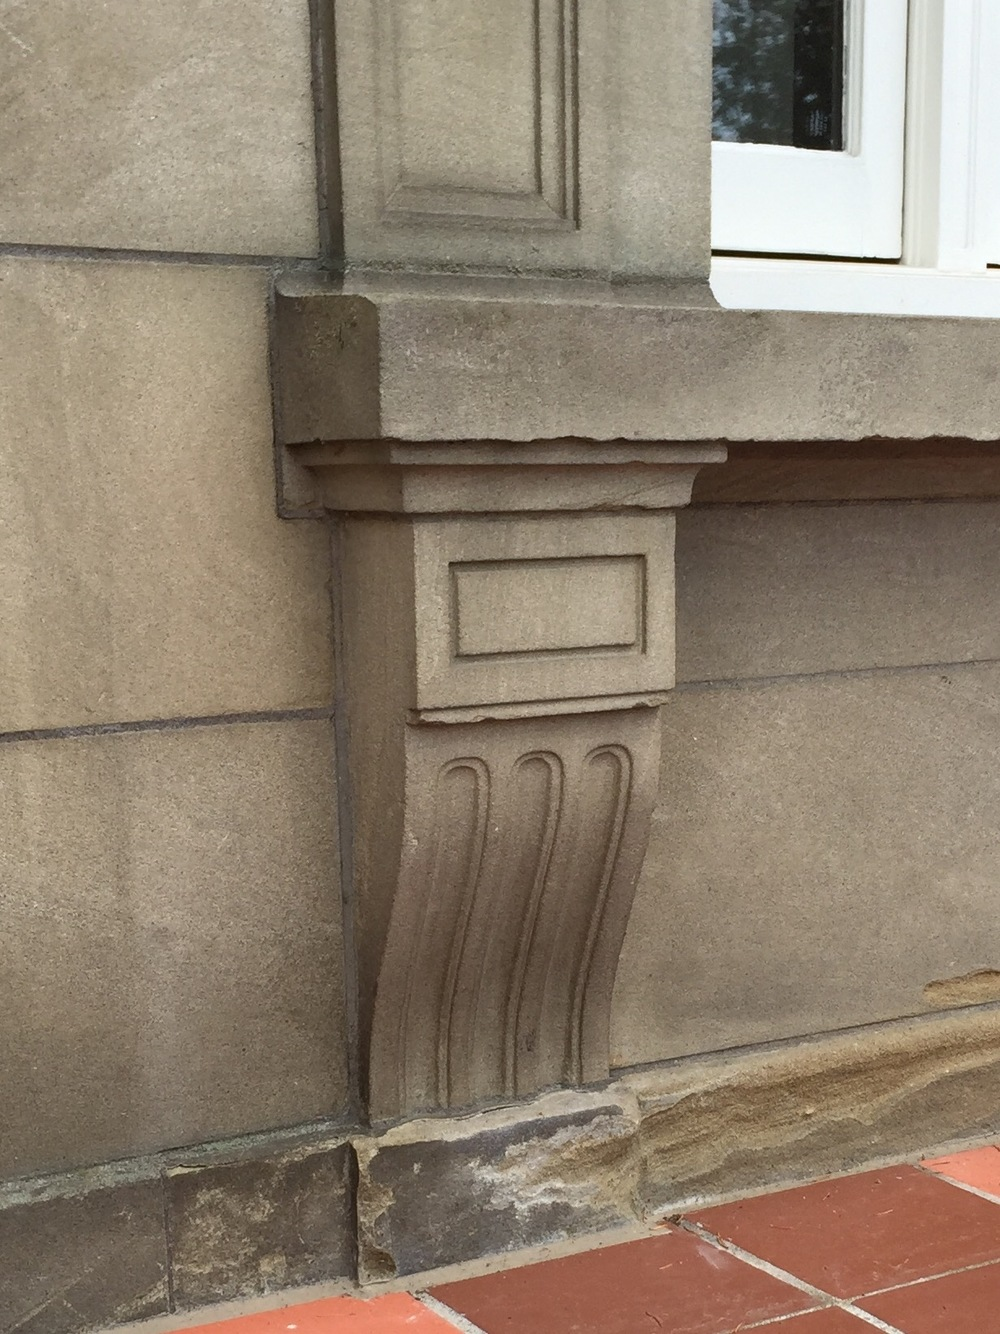 Fig. 5 Pittock Mansion, Doric Bracket Below Sill, Photo by Author